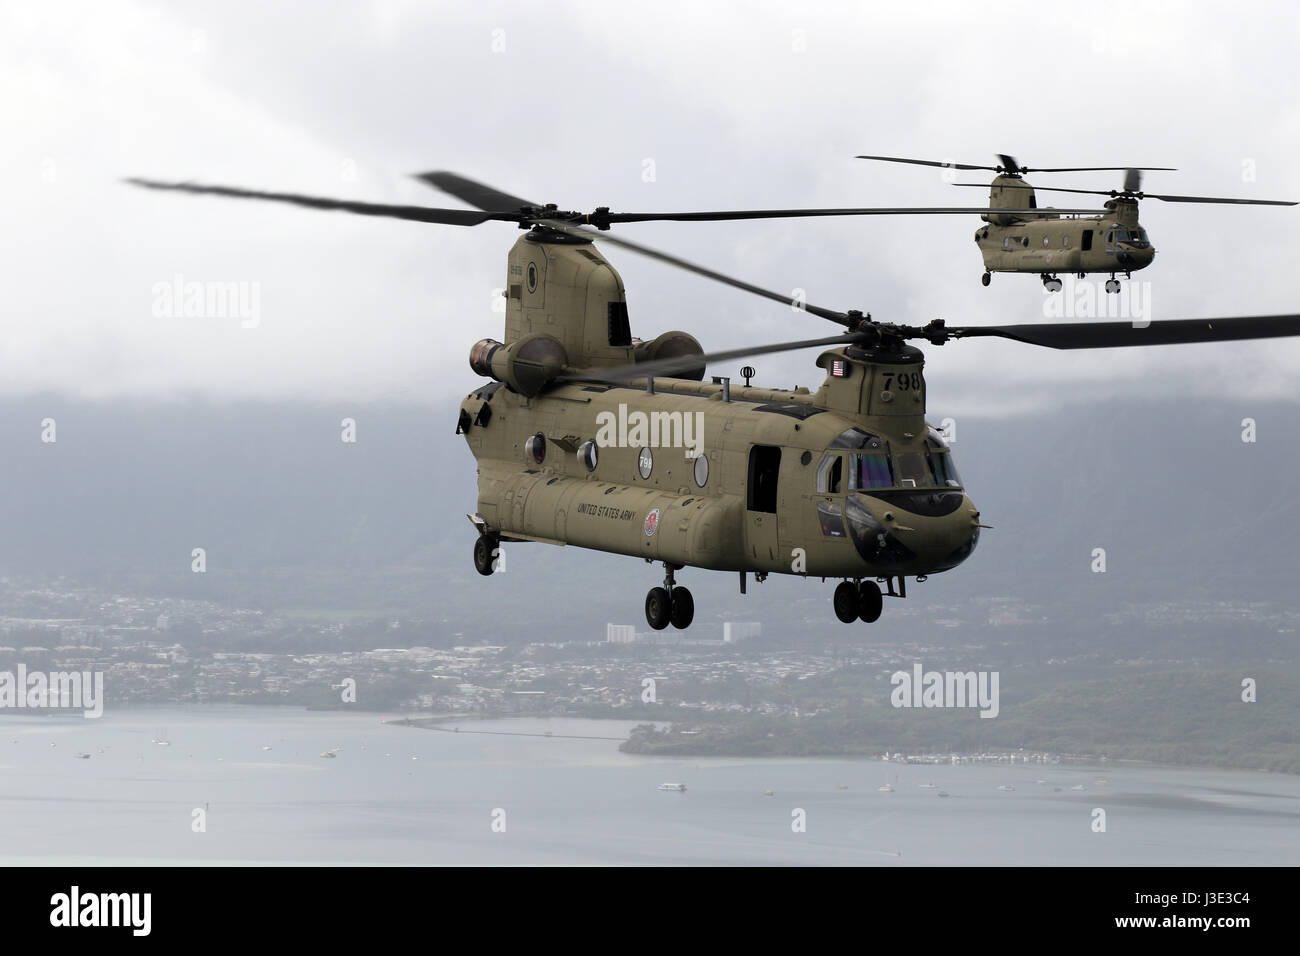 U.S. Army National Guard soldiers conduct an orientation flight in CH-47F Chinook helicopters at the Bellows Air - Stock Image